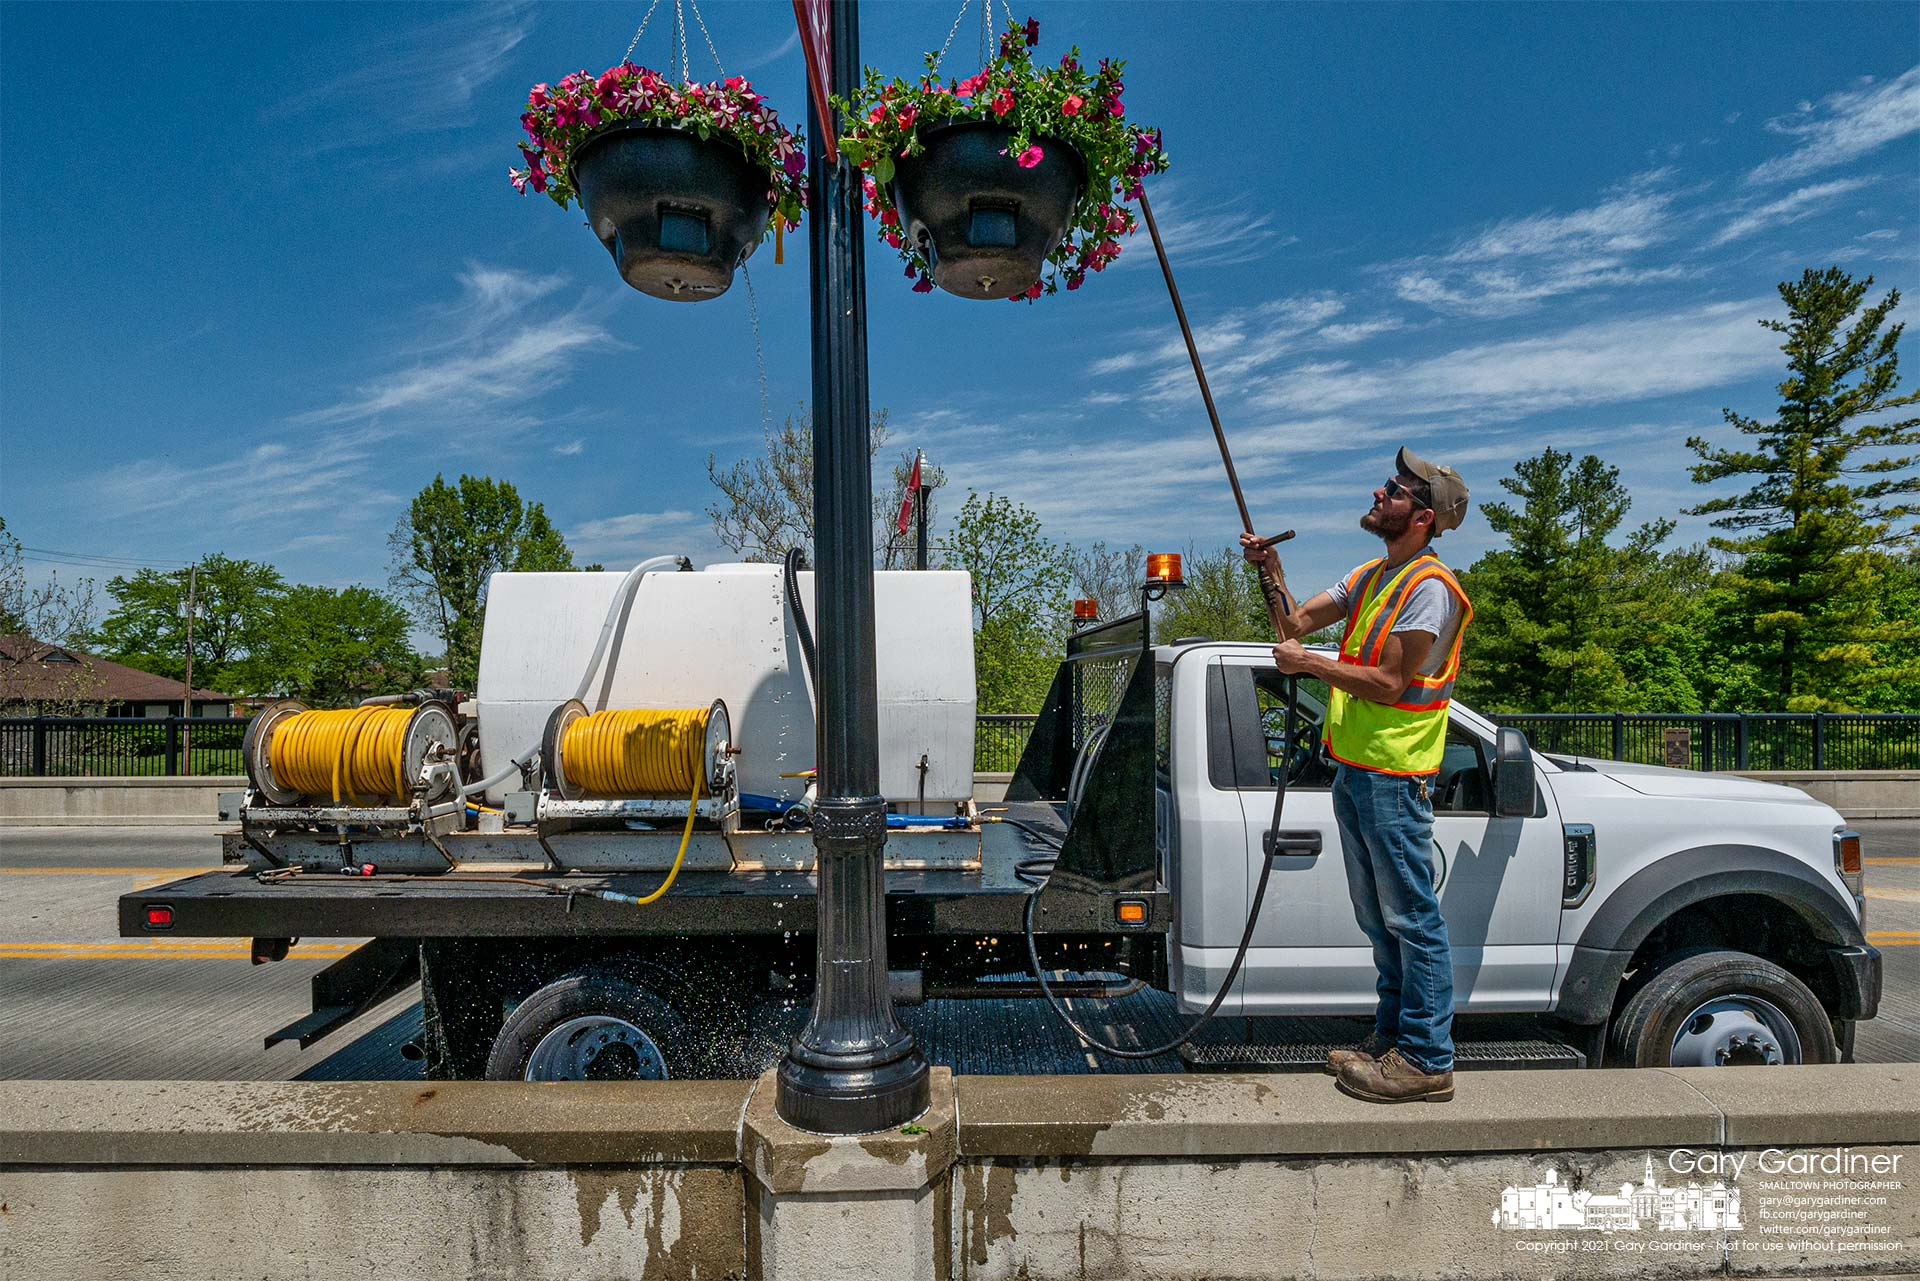 A city parks worker stands on the concrete barrier as he irrigates hanging baskets on the Main Street Bridge. My Final Photo for May 18, 2021.